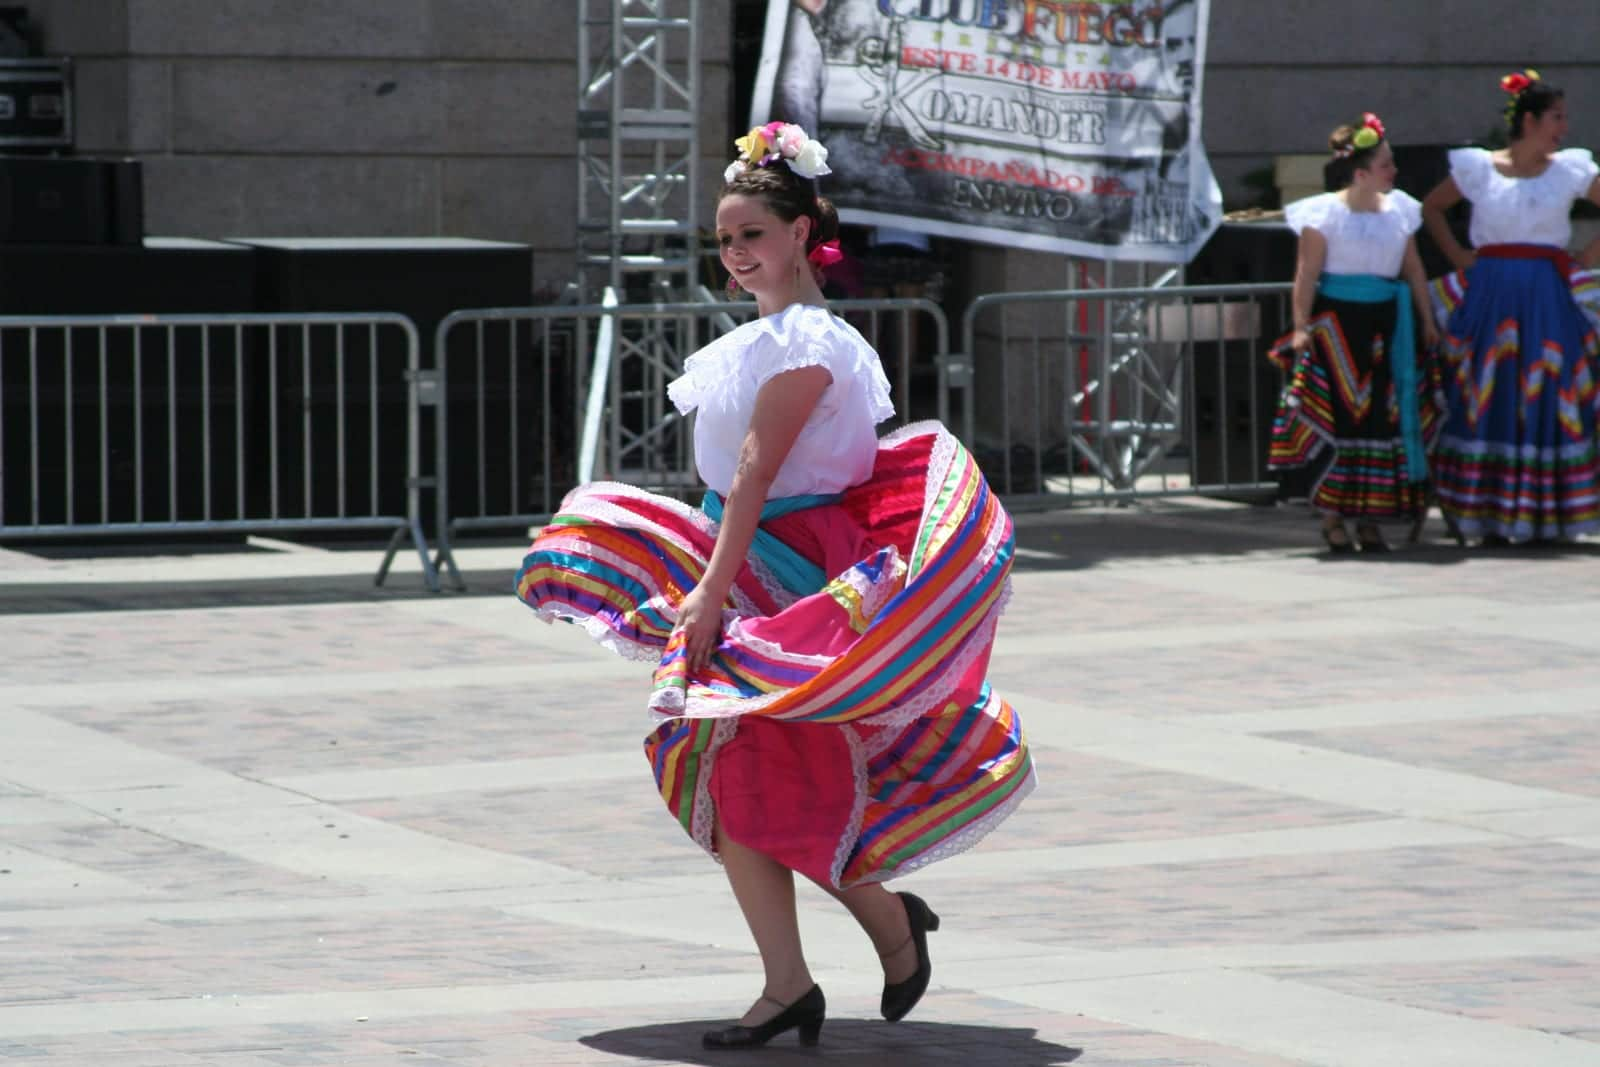 Cindo de Mayo Festival Parade Woman Dancer